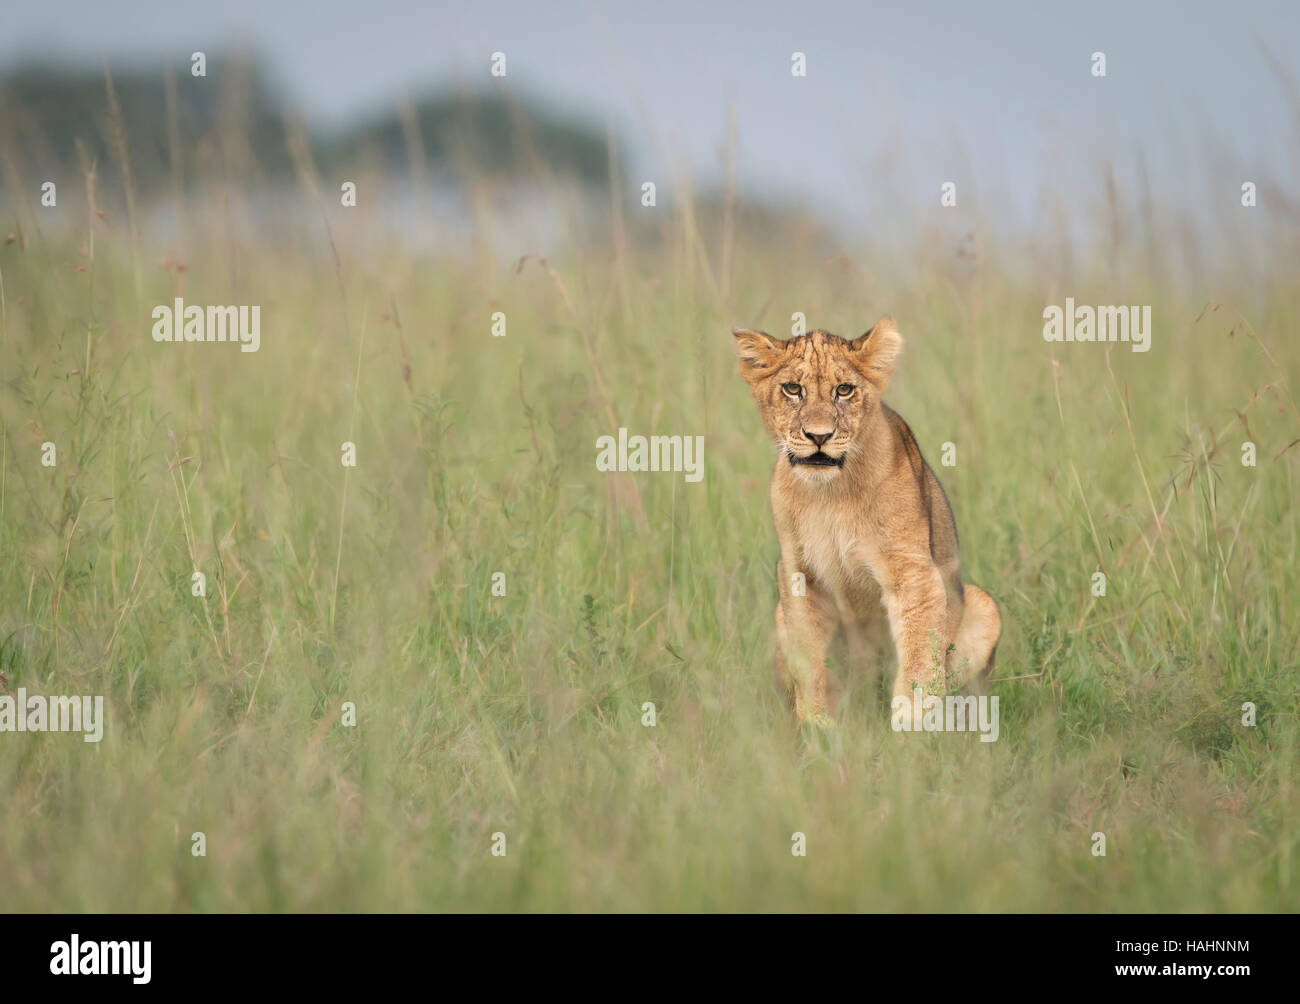 Lion Cub makes direct eye contact in tall grass - Stock Image